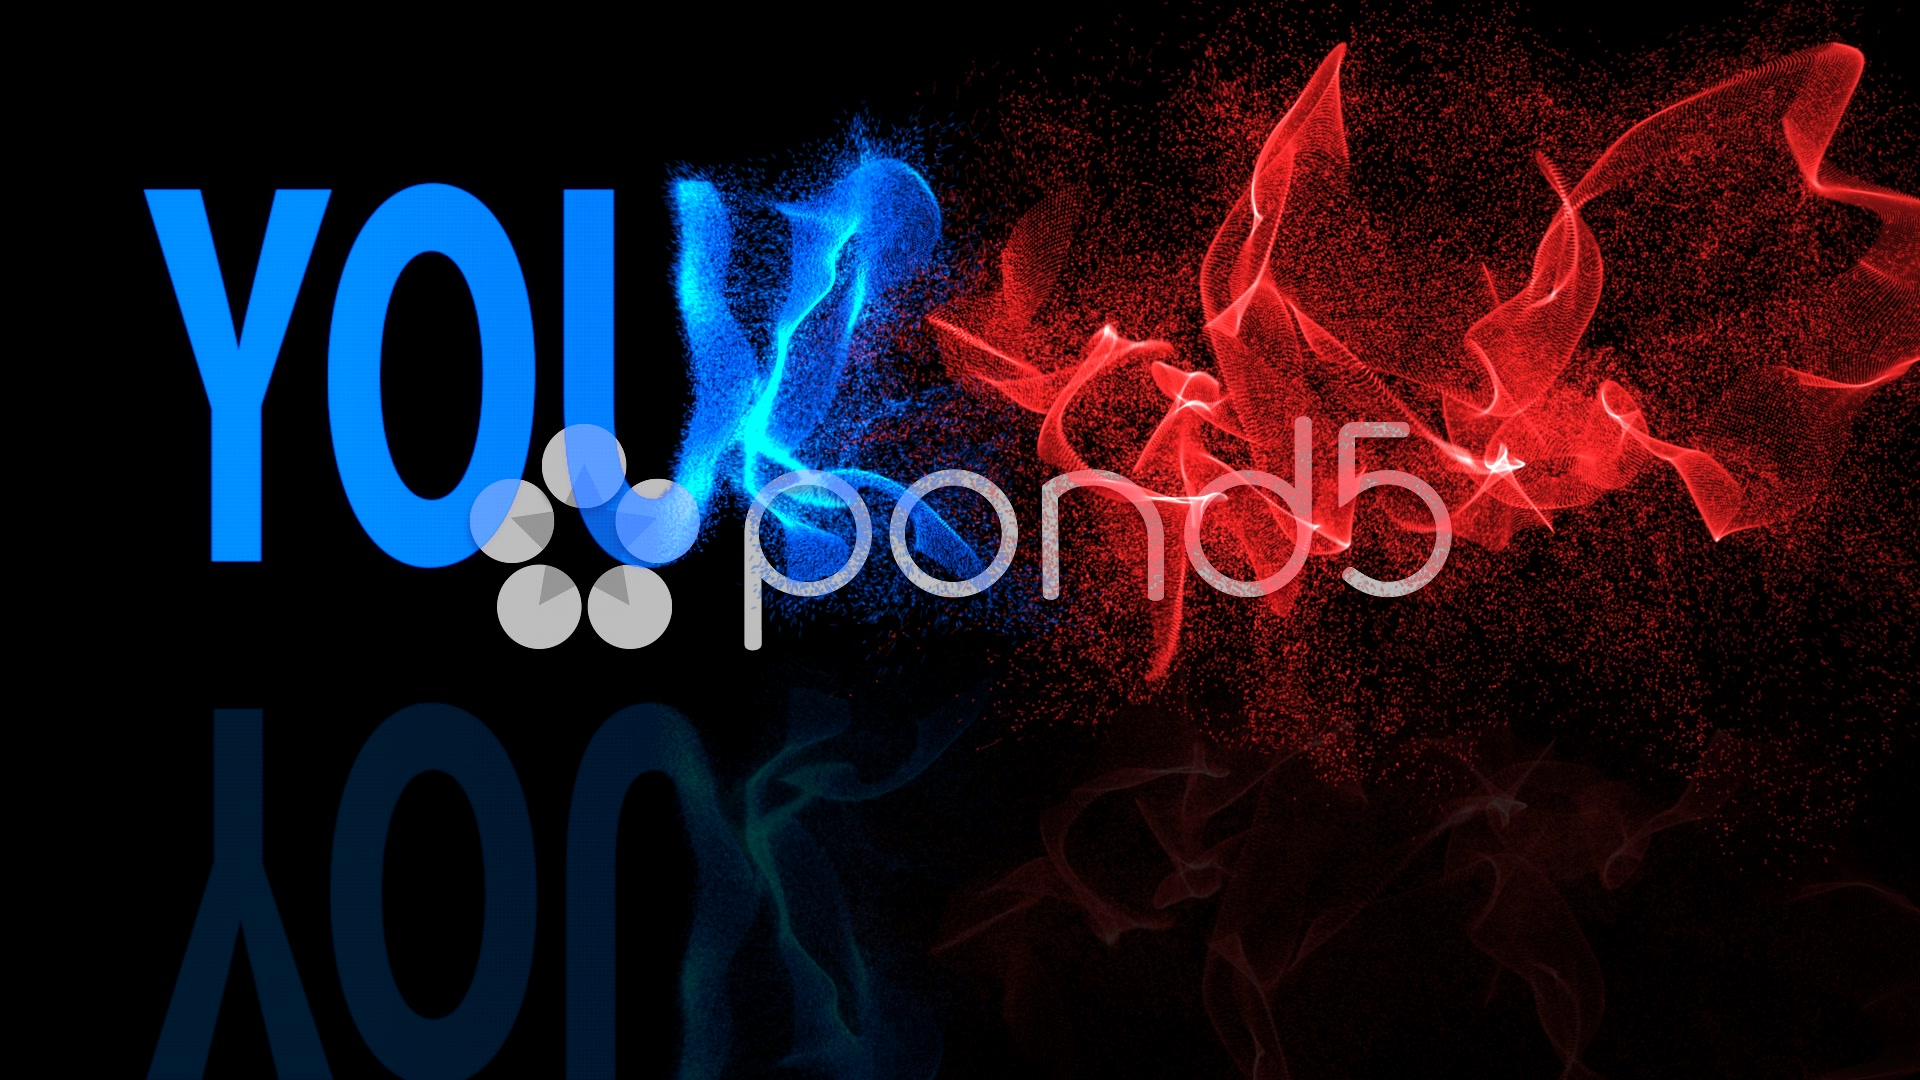 After Effects Project - Pond5 Particles Logo Build Animation 33263435